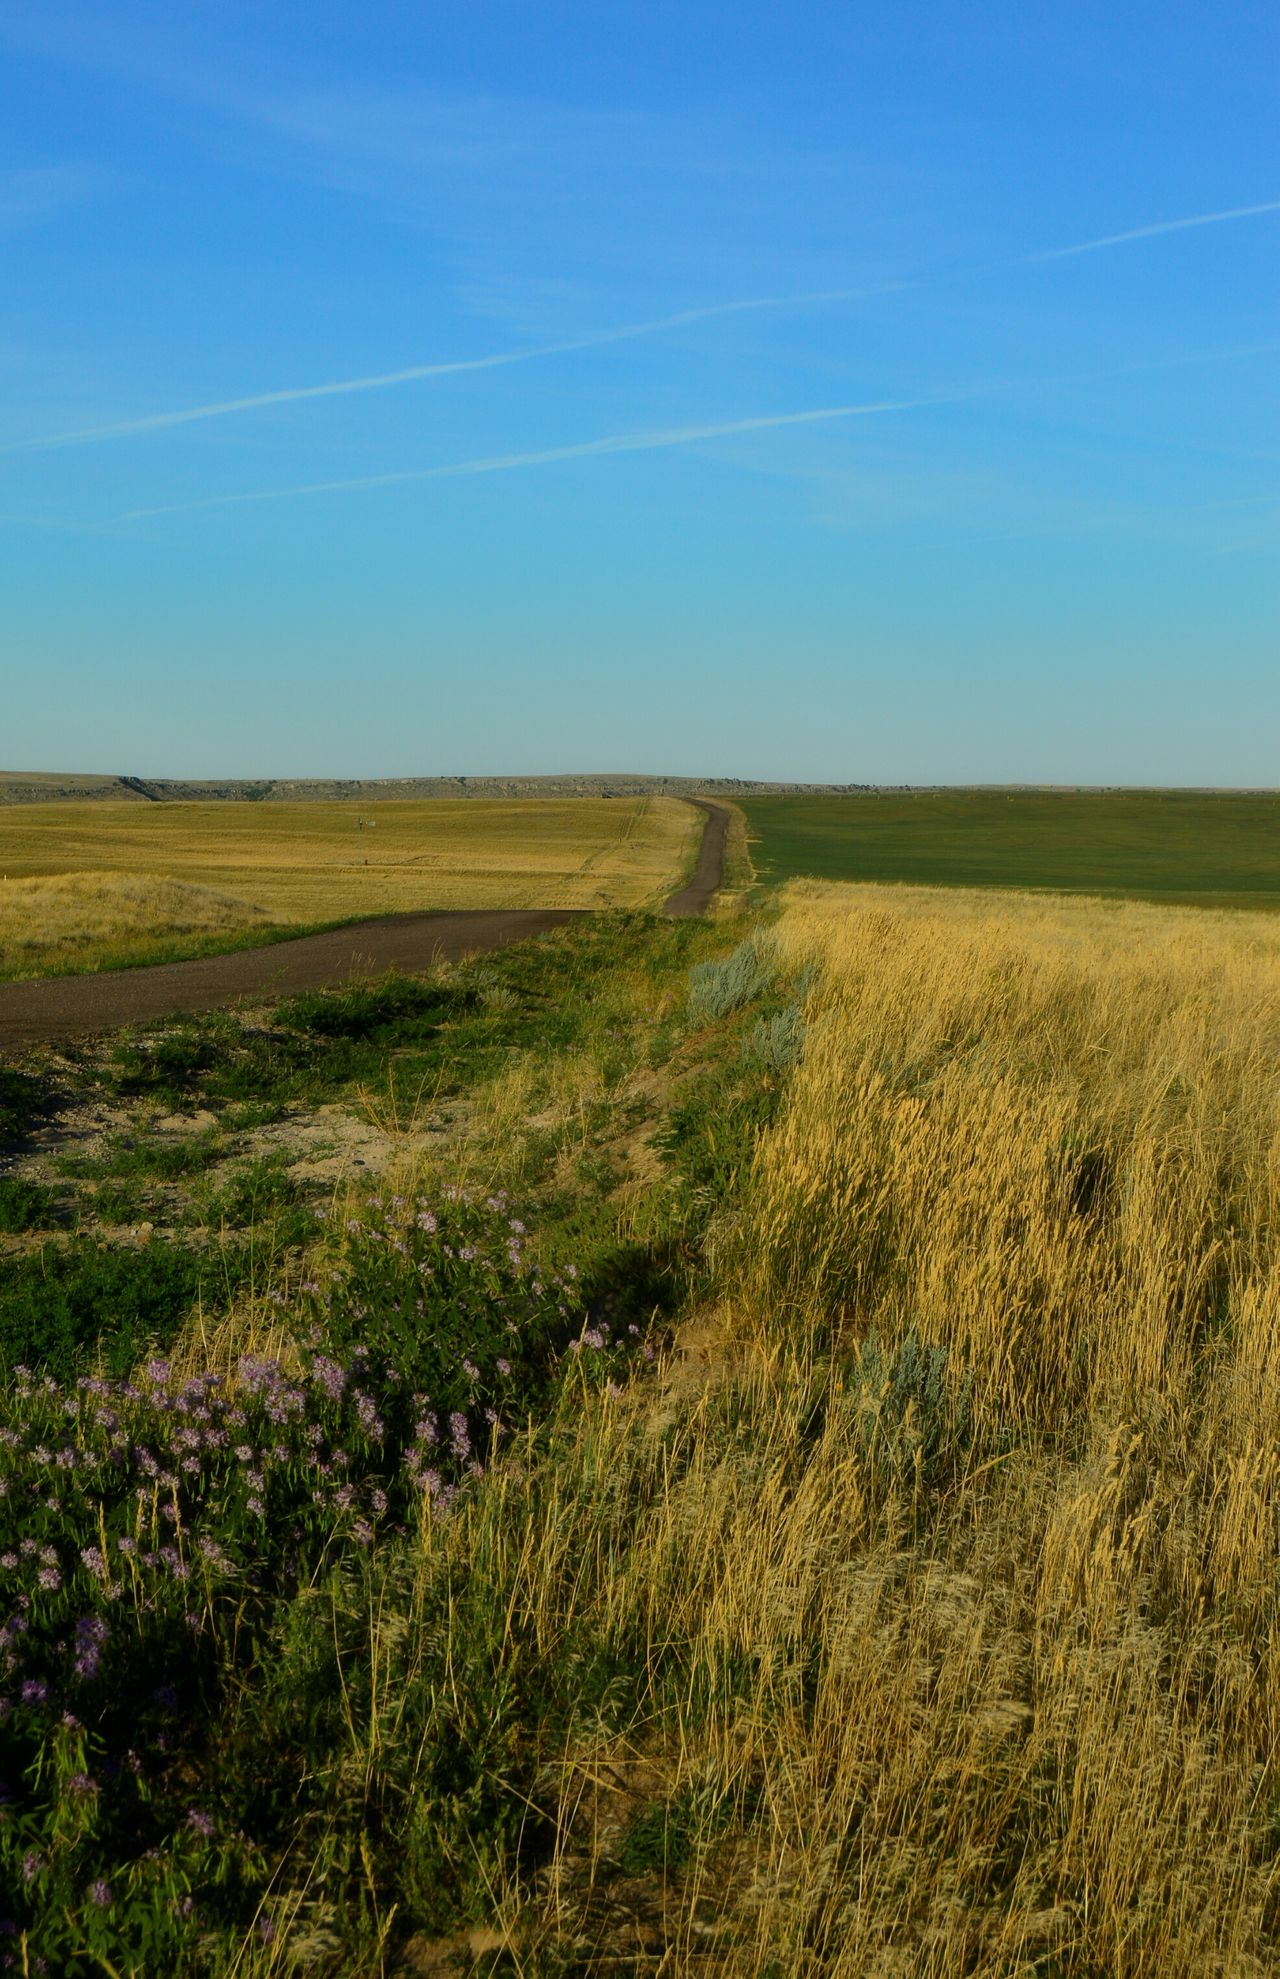 Beauty after fire Prairie Center Wyoming Fire Was Just A Month Ago In July 2016 Grass Seems To Come Back Greener Could See Smoke Quite A Few Mile Away About 3 Miles In Width